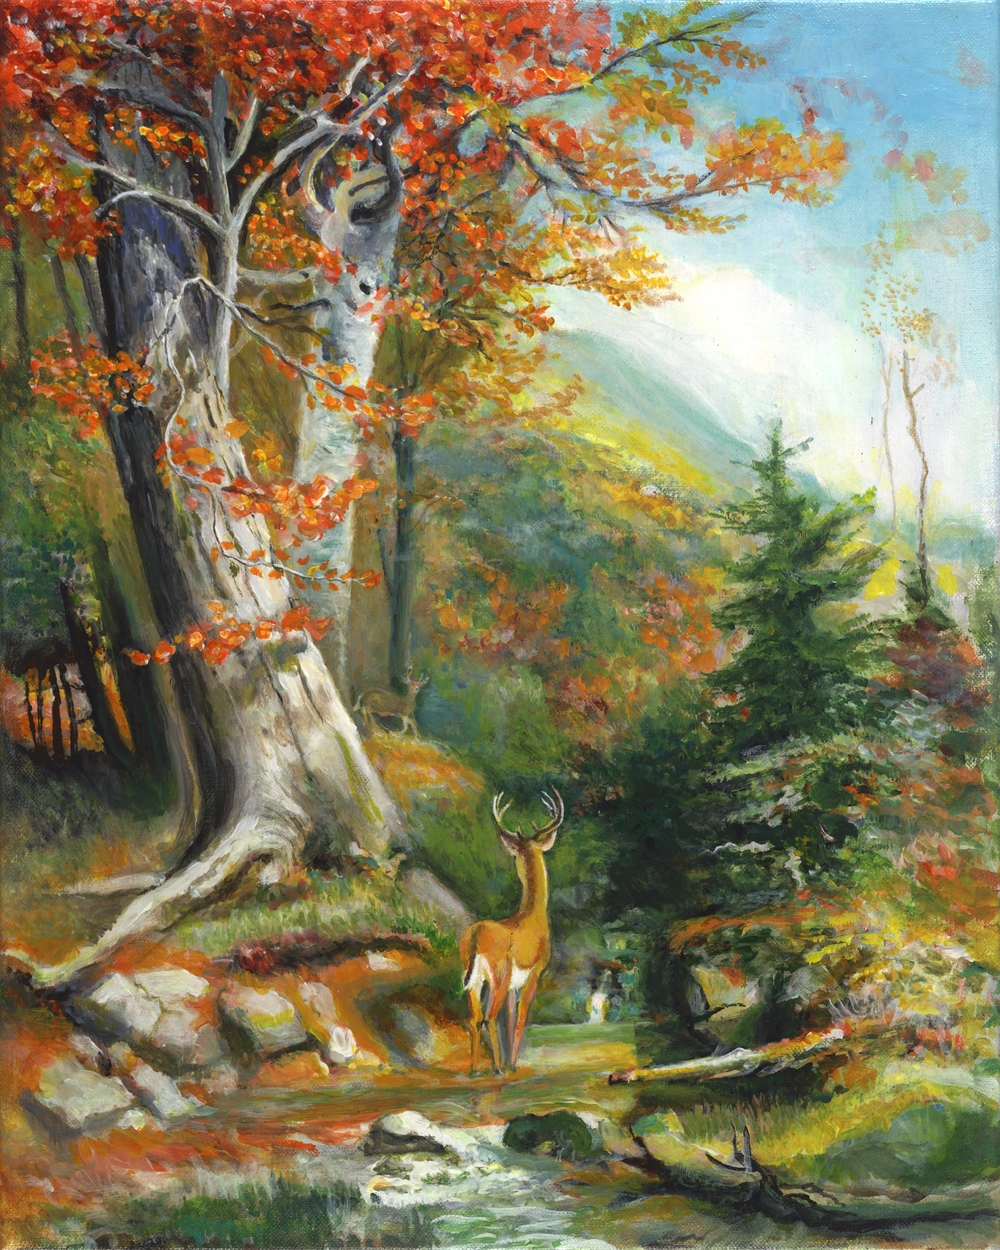 Mountain Stream and Deer by George Porter after CH Beard